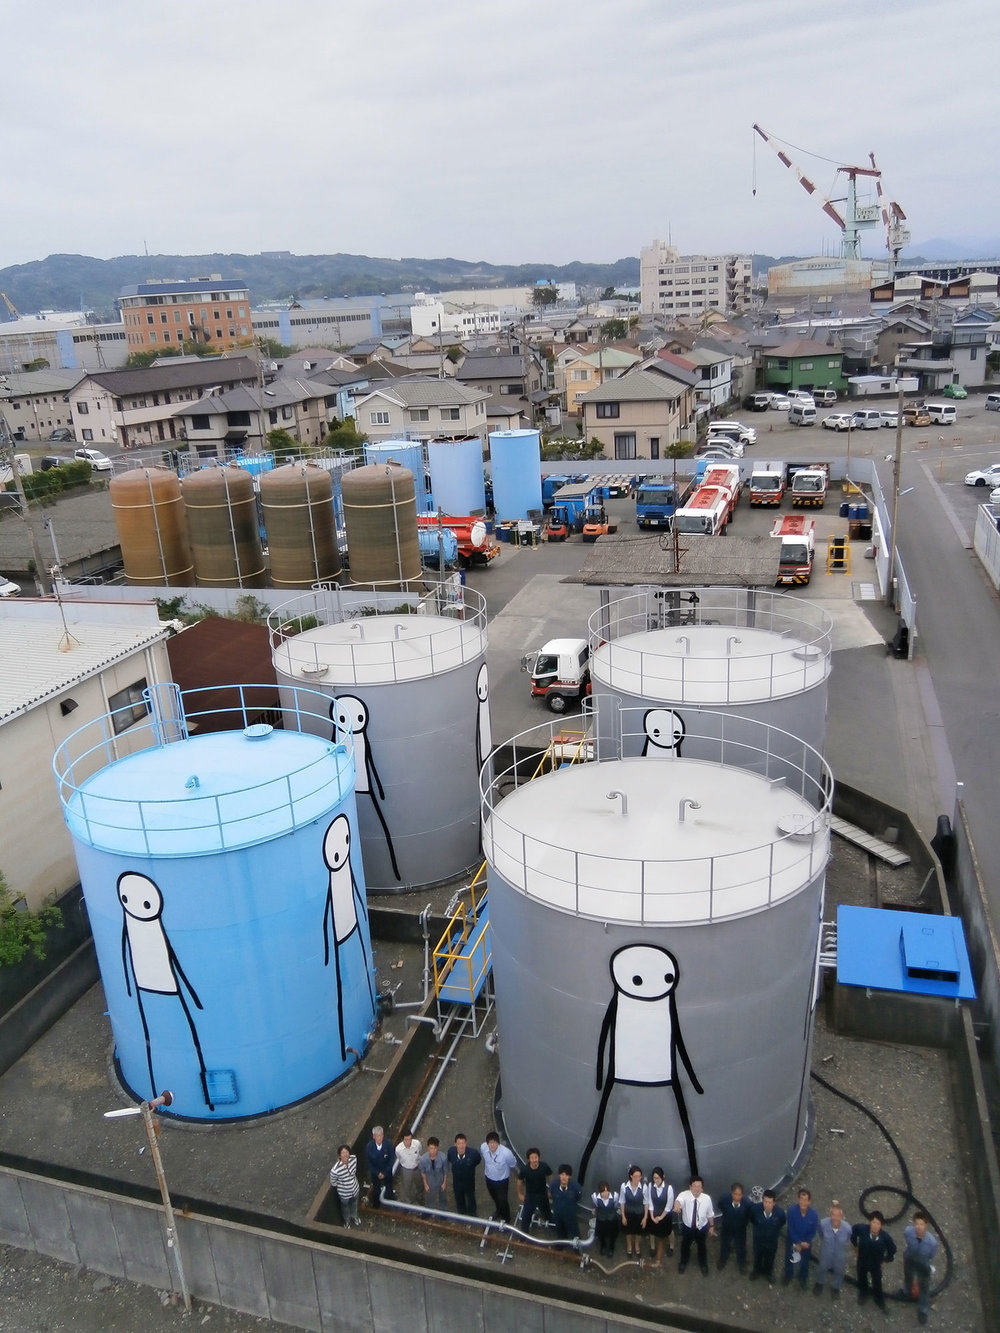 Oil Recycling Plant The four tanks clean impurities out of reclaimed oil so it can be re-used. The giant figures walk round and round endlessly echoing the recycling process. Shimizu, Japan, 2013.